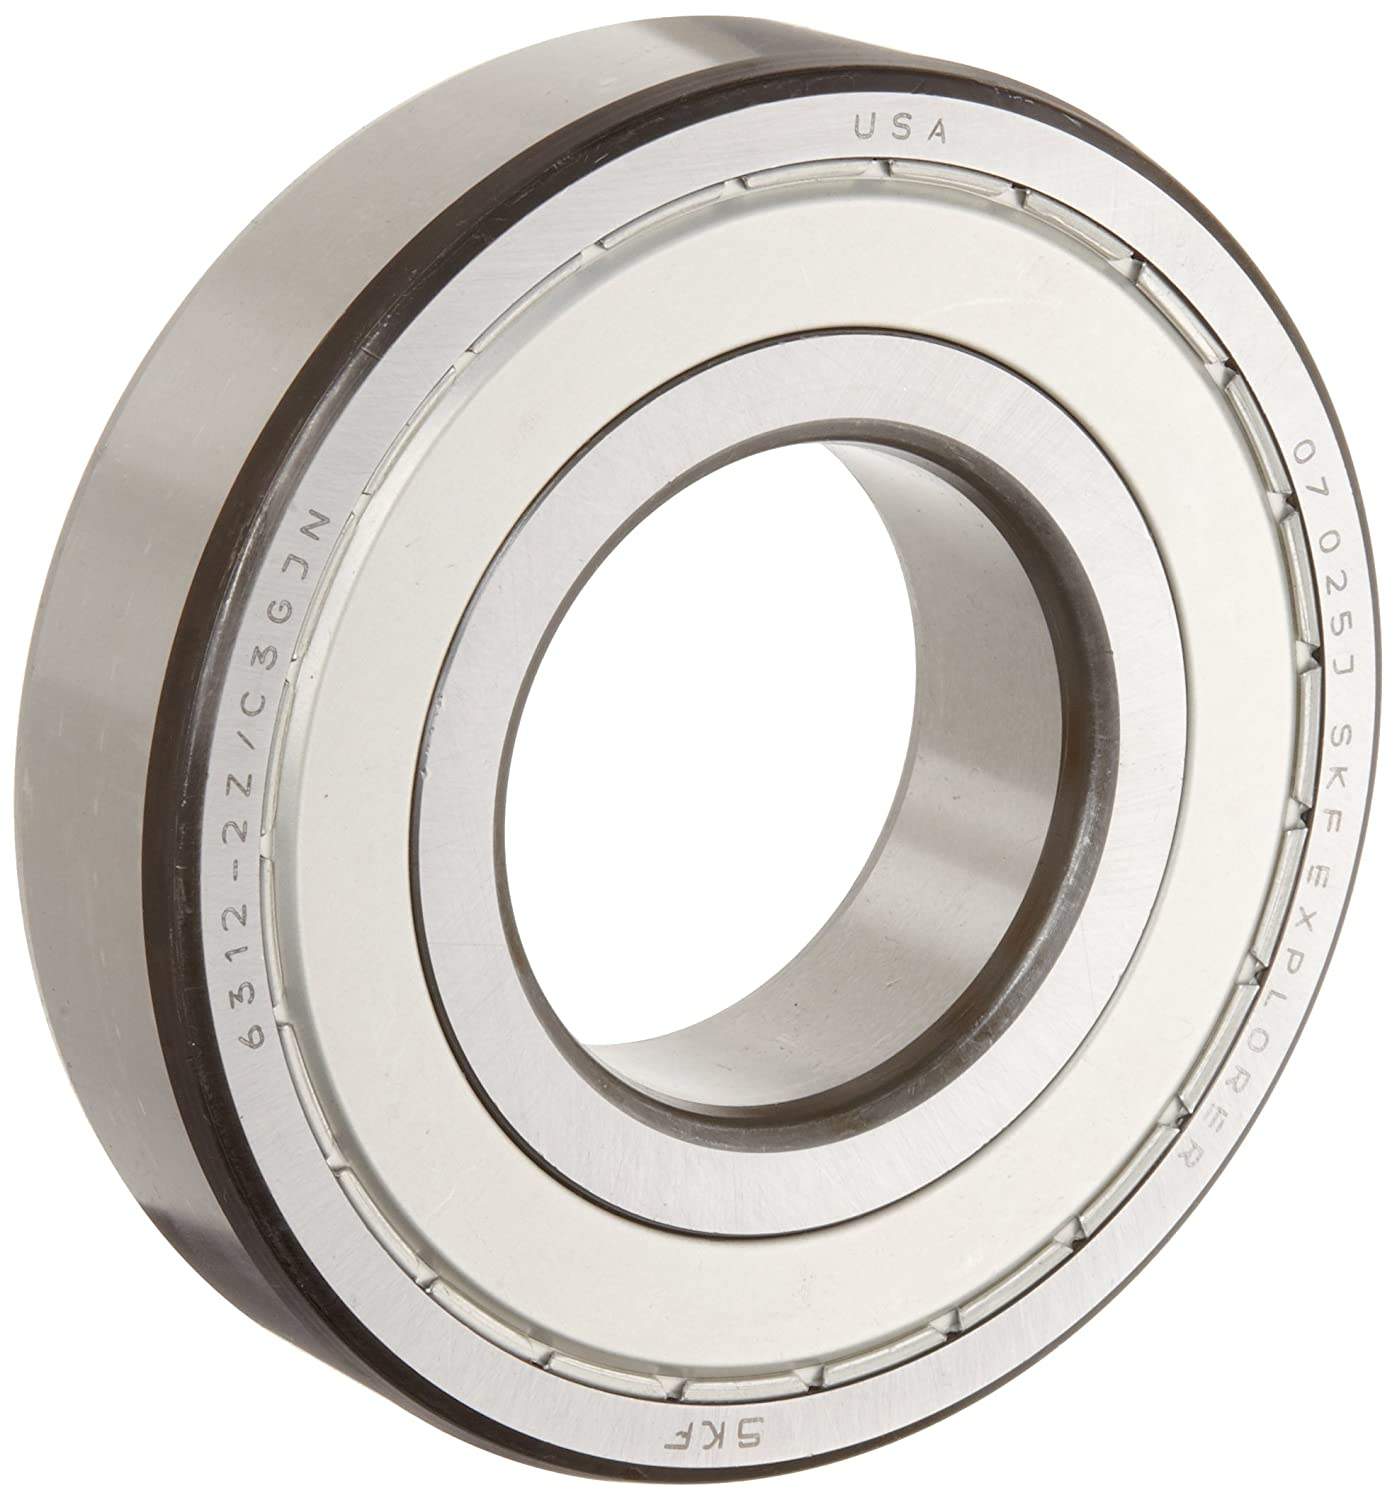 SKF 6305 2ZJEM Medium Series Deep Groove Ball Bearing, Deep Groove Design, ABEC 1 Precision, Double Shielded, Non-Contact, Steel Cage, C3 Clearance, 25mm Bore, 62mm OD, 17mm Width, 2610lbf Static Load Capacity, 5060lbf Dynamic Load Capacity 6305-2ZJEM